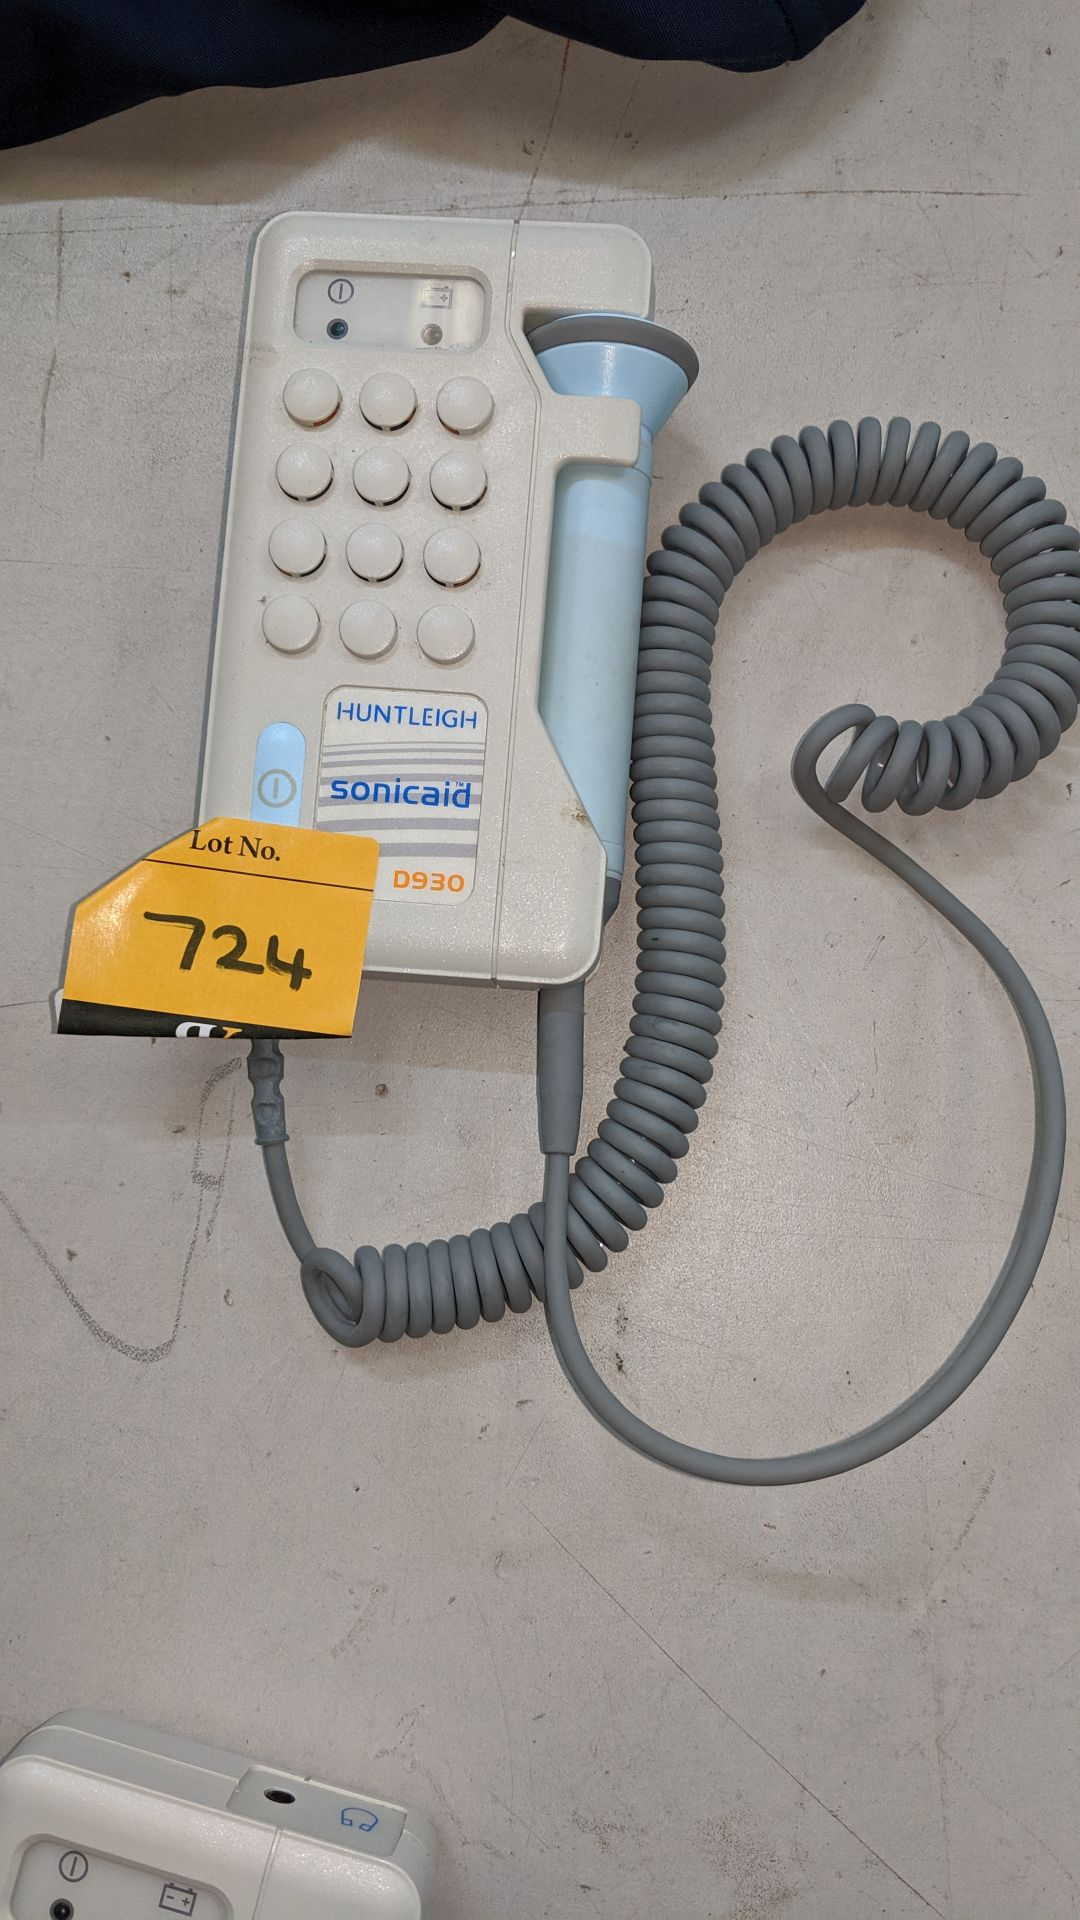 Lot 724 - Huntleigh Sonicaid D930 Fetal Doppler tester. This is one of a large number of lots used/owned by